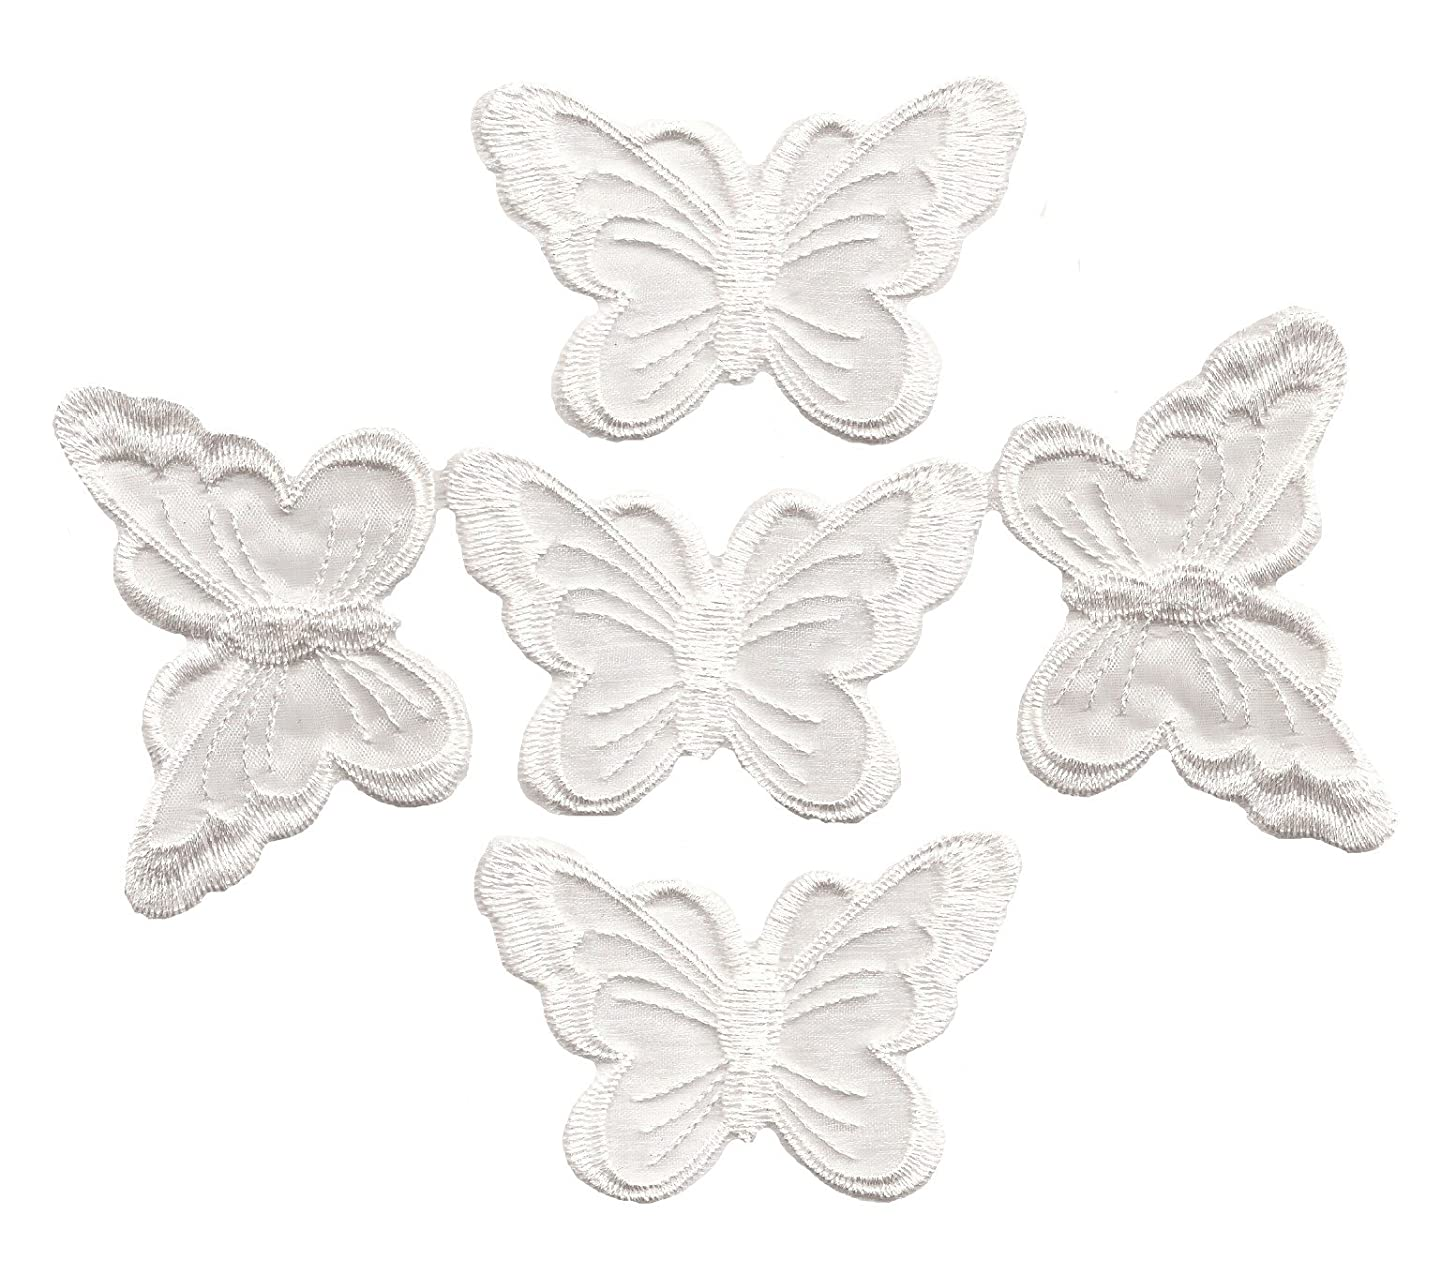 A-51, 5 White Organza Butterfly Patches Dress patch7.5x5.0cm Butterfly Bug Embroidered Iron On Applique Patch 2.95 x 1.96 inches(7.5cm x 5.0cm)